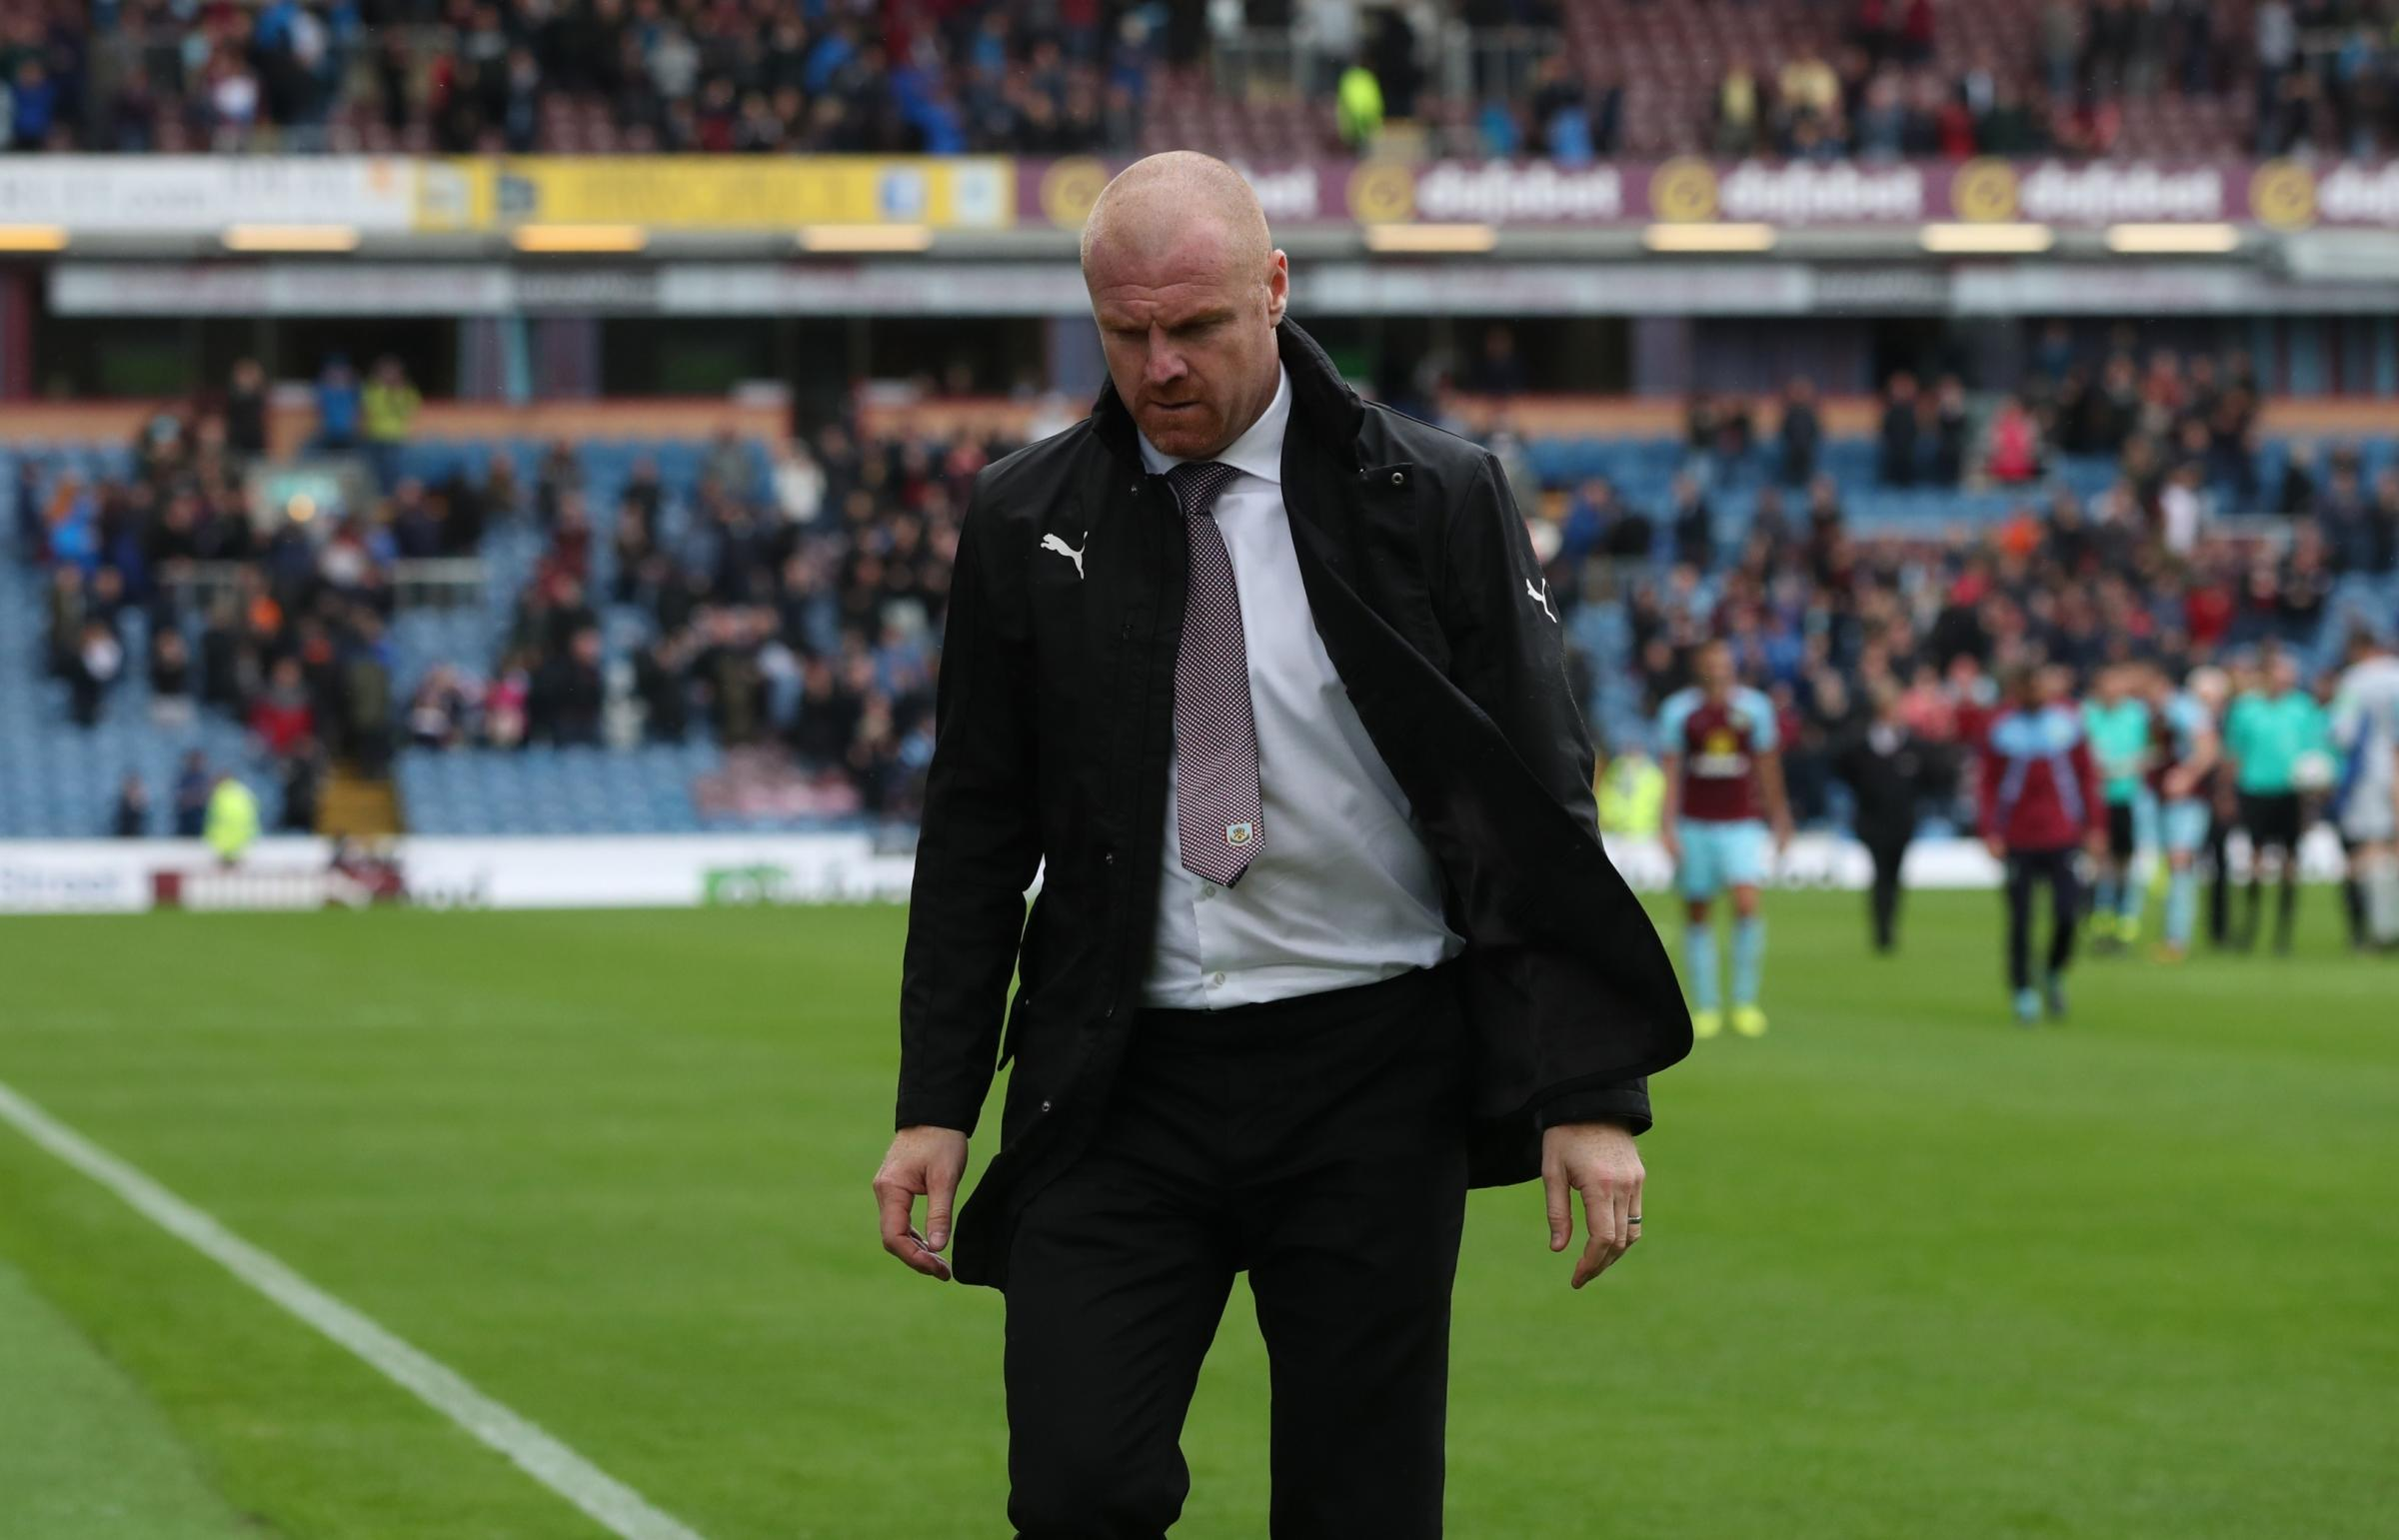 Sean Dyche will look at how Burnley adapted to 4-4-2 after they were below par against Crystal Palace